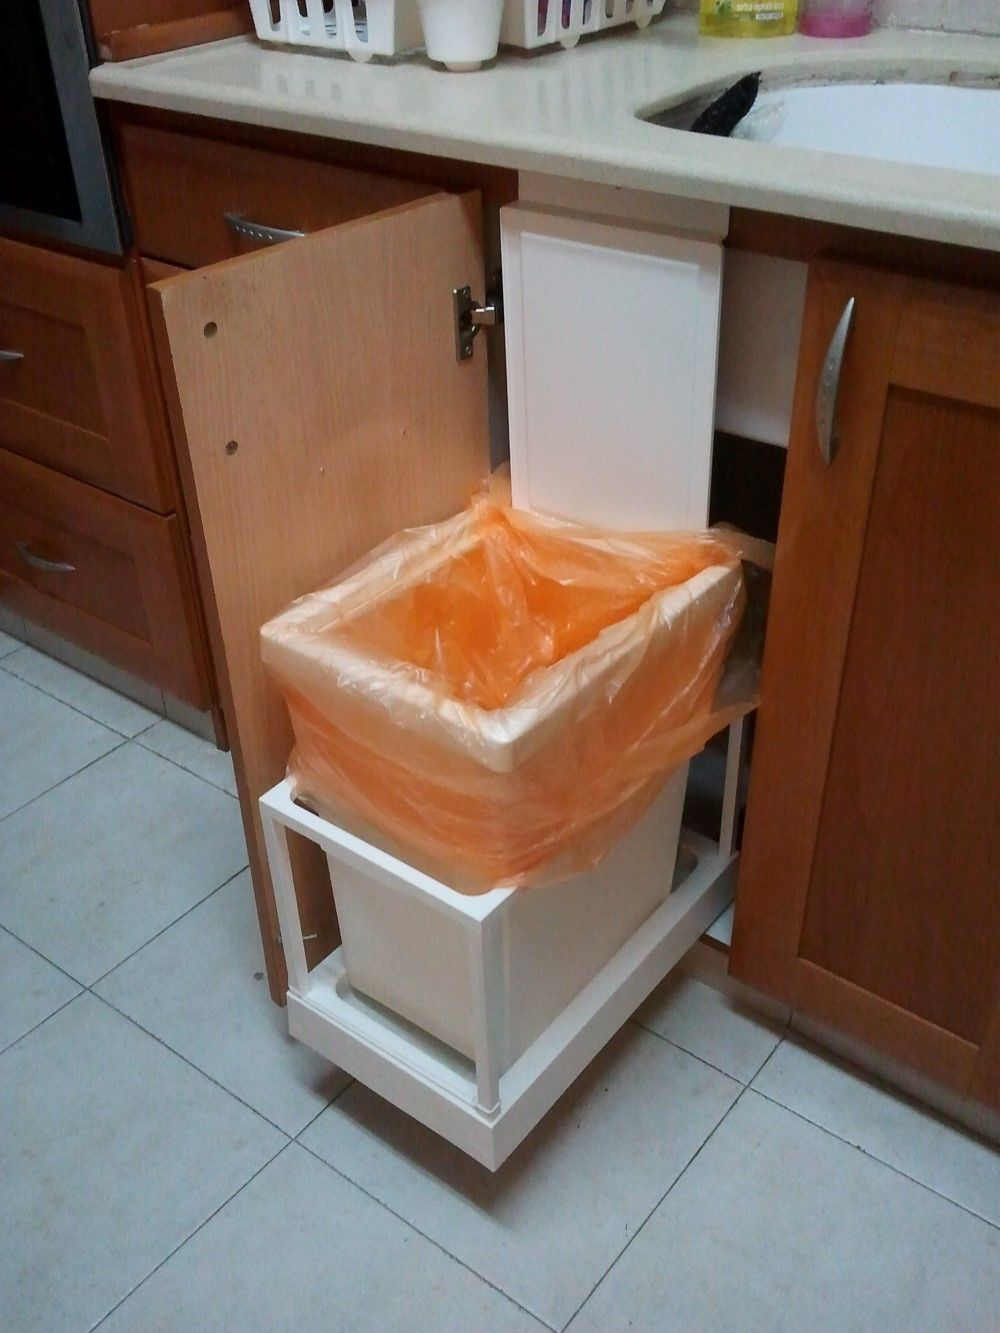 Automatic kitchen trash can | DIY | Pinterest